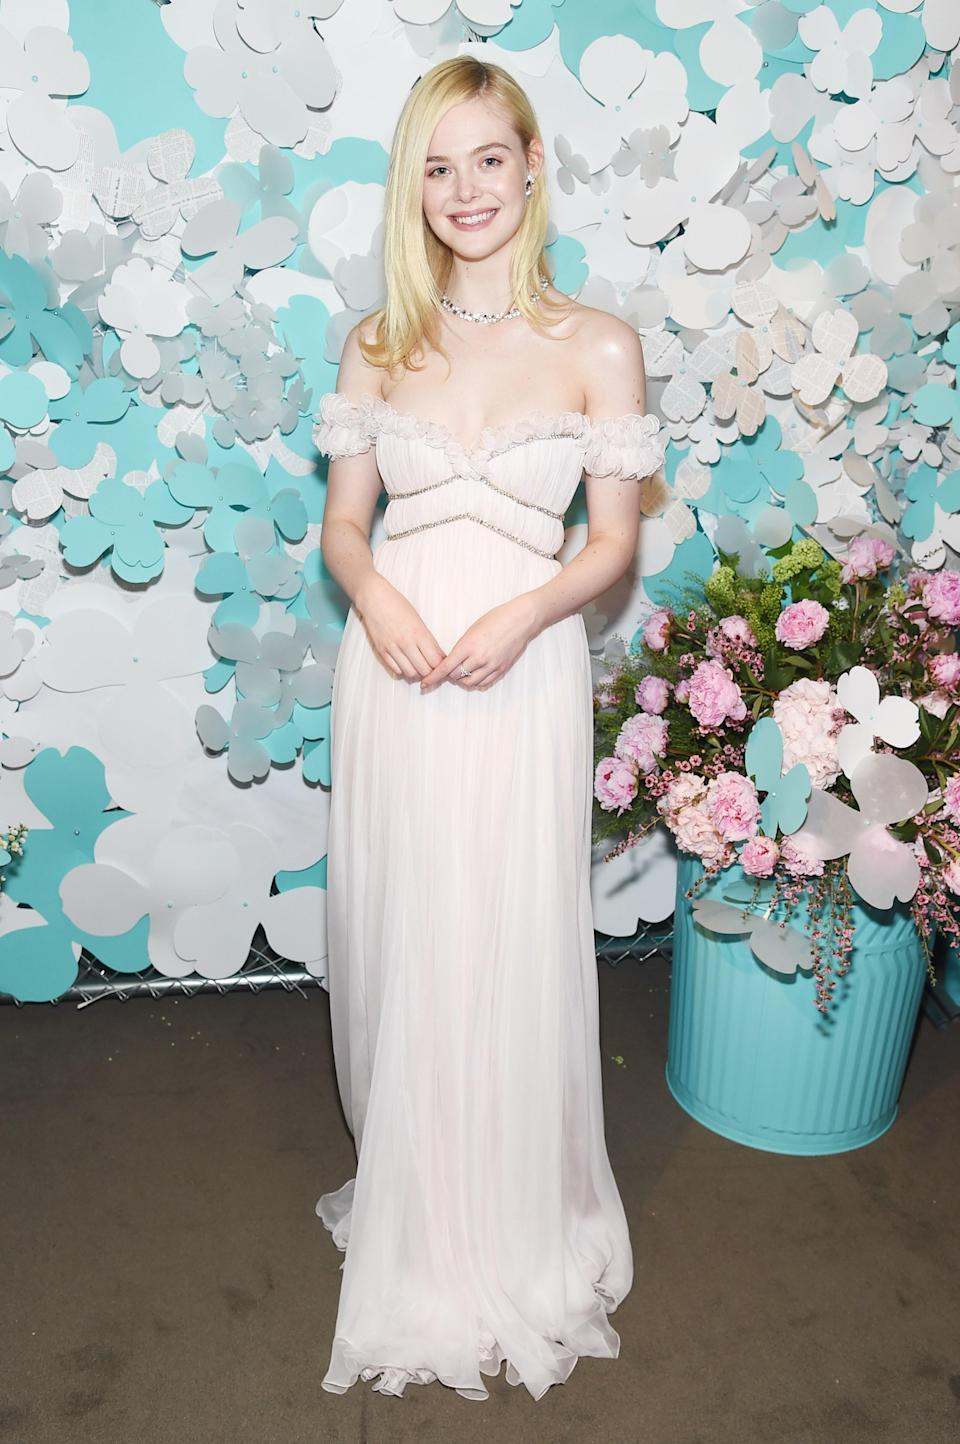 WHO: Elle Fanning<br> WHAT: Giambattista Valli Haute Couture<br> WHERE: At the Tiffany & Co. Paper Flower launch, New York City<br> WHEN: May 3, 2018